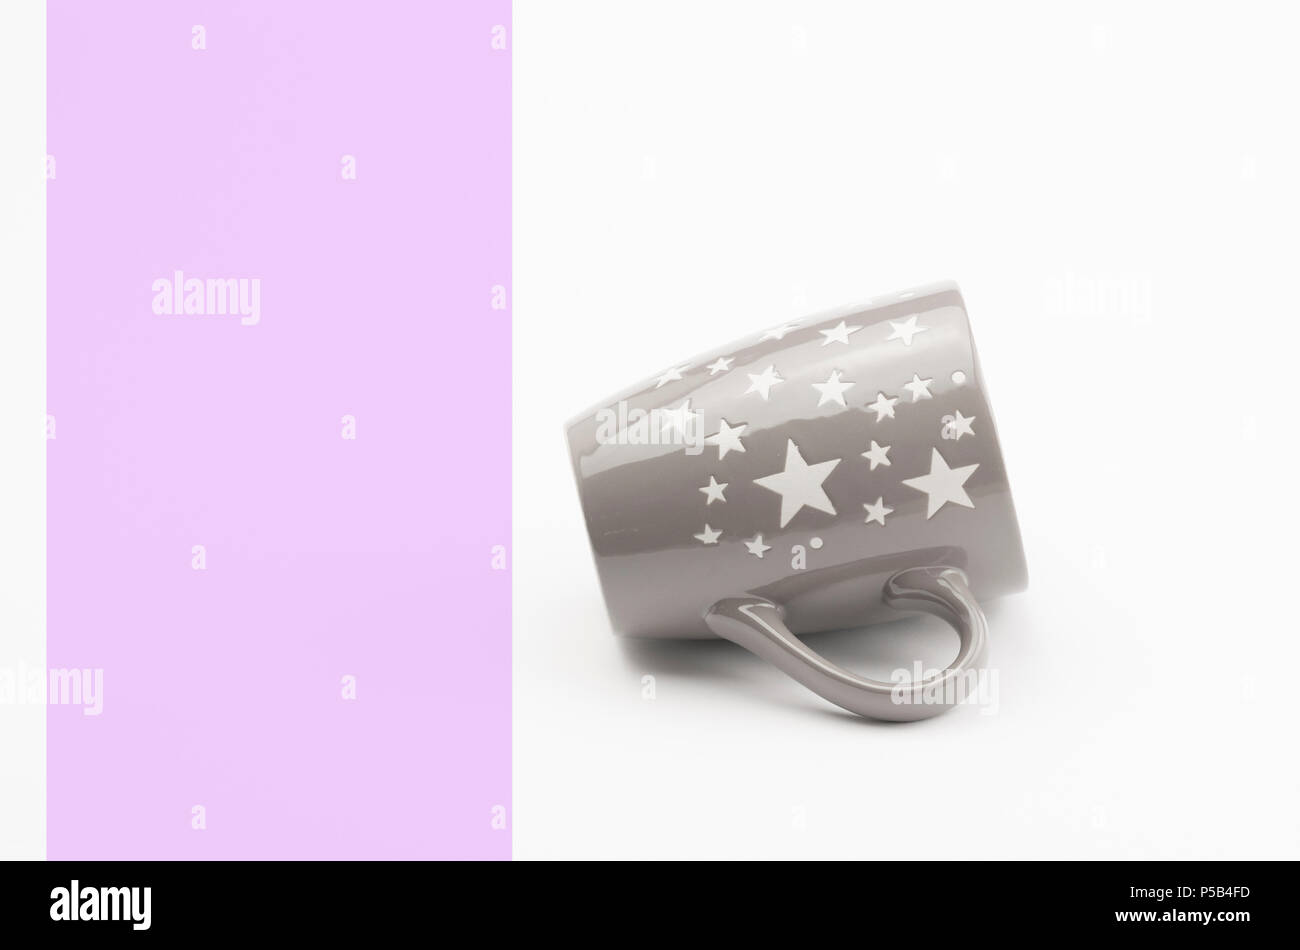 modern design decorated ceramic tea coffee mug on a white background - Stock Image